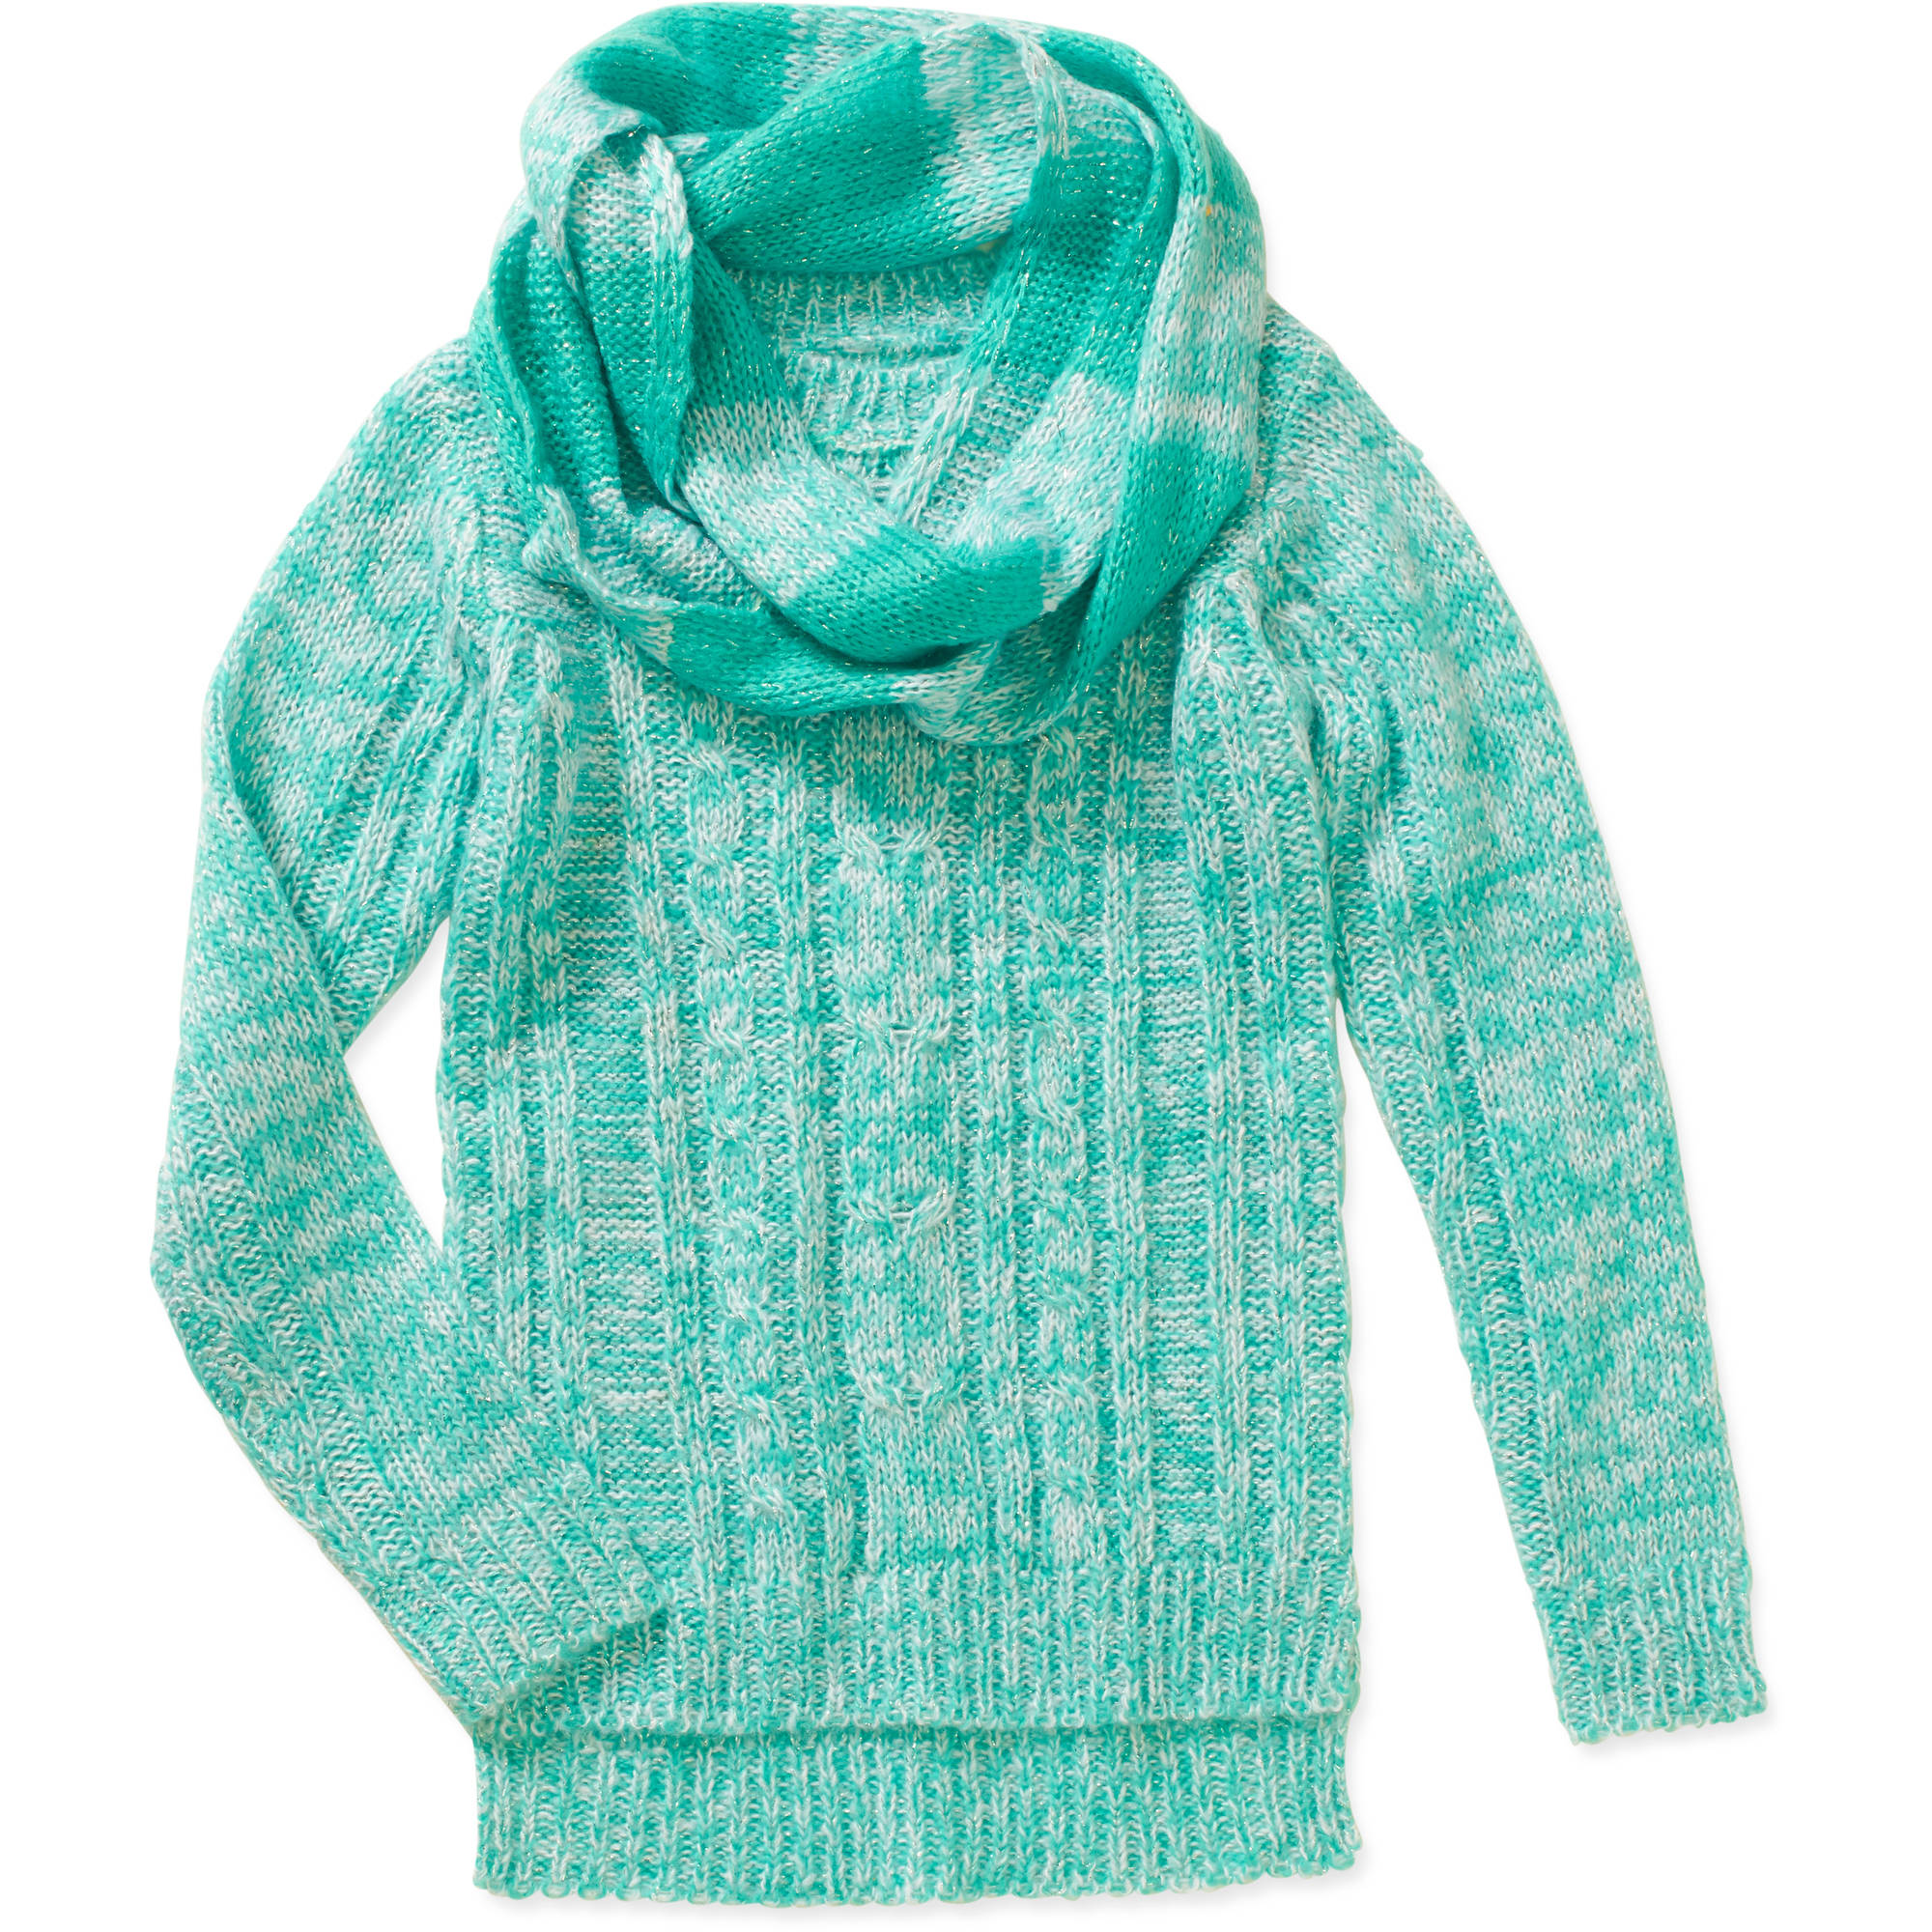 Derek Heart Girls Cable Sweater with Infinity Scarf